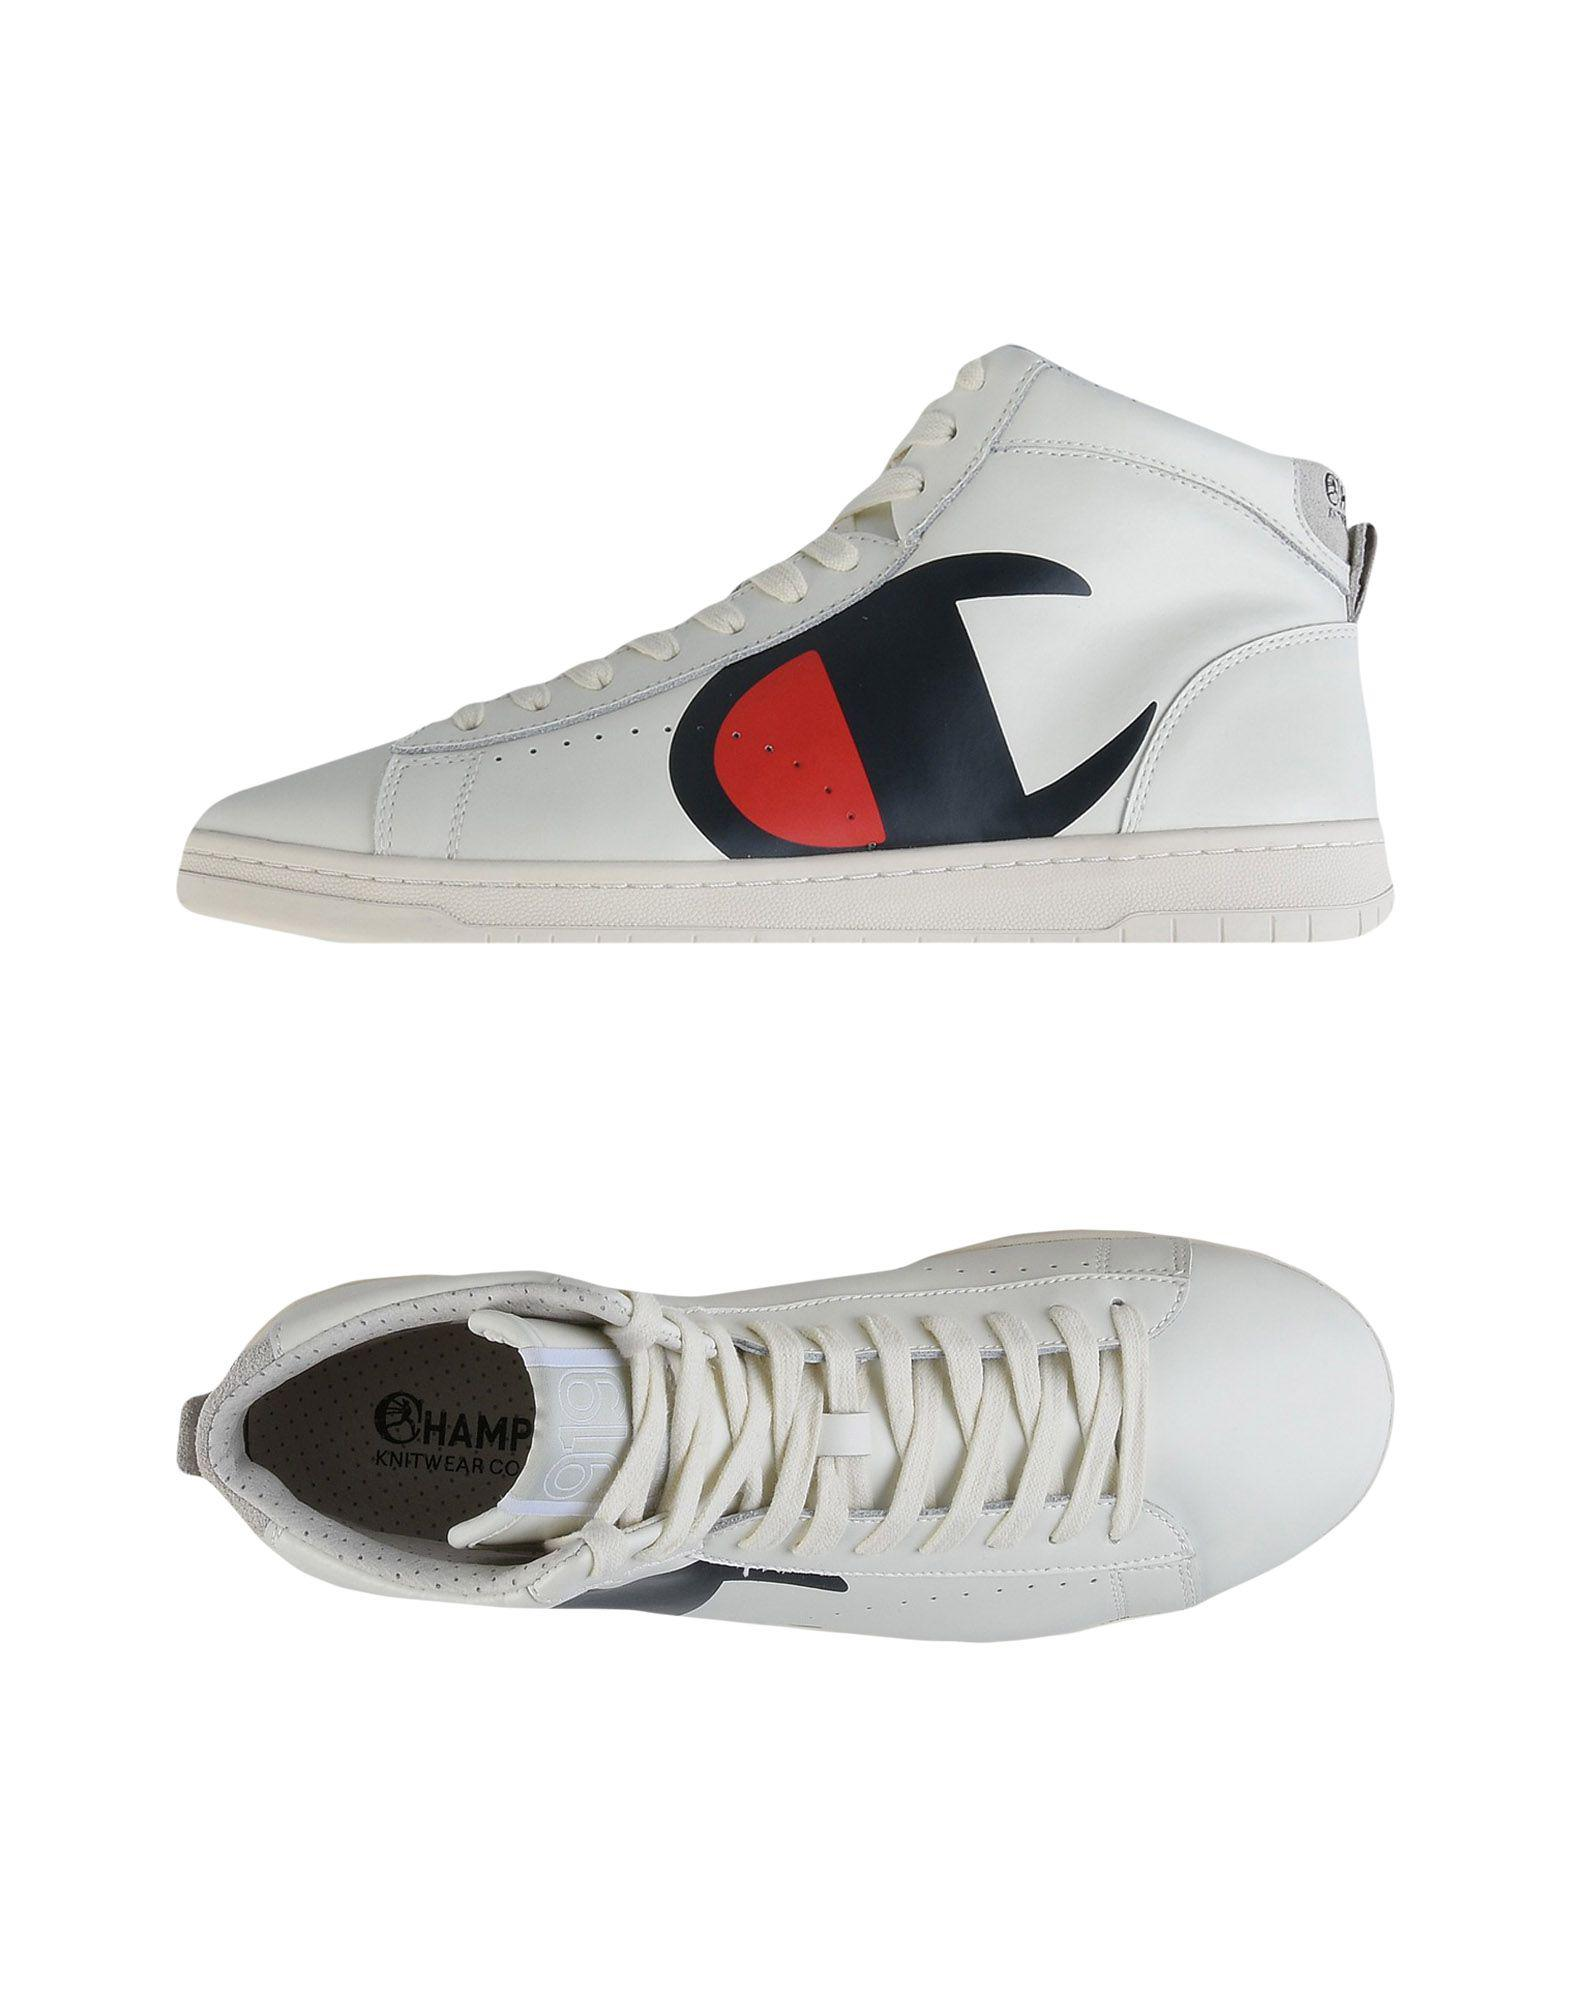 082a9e8cc92fc8 Lyst - Champion High-tops   Sneakers in White for Men